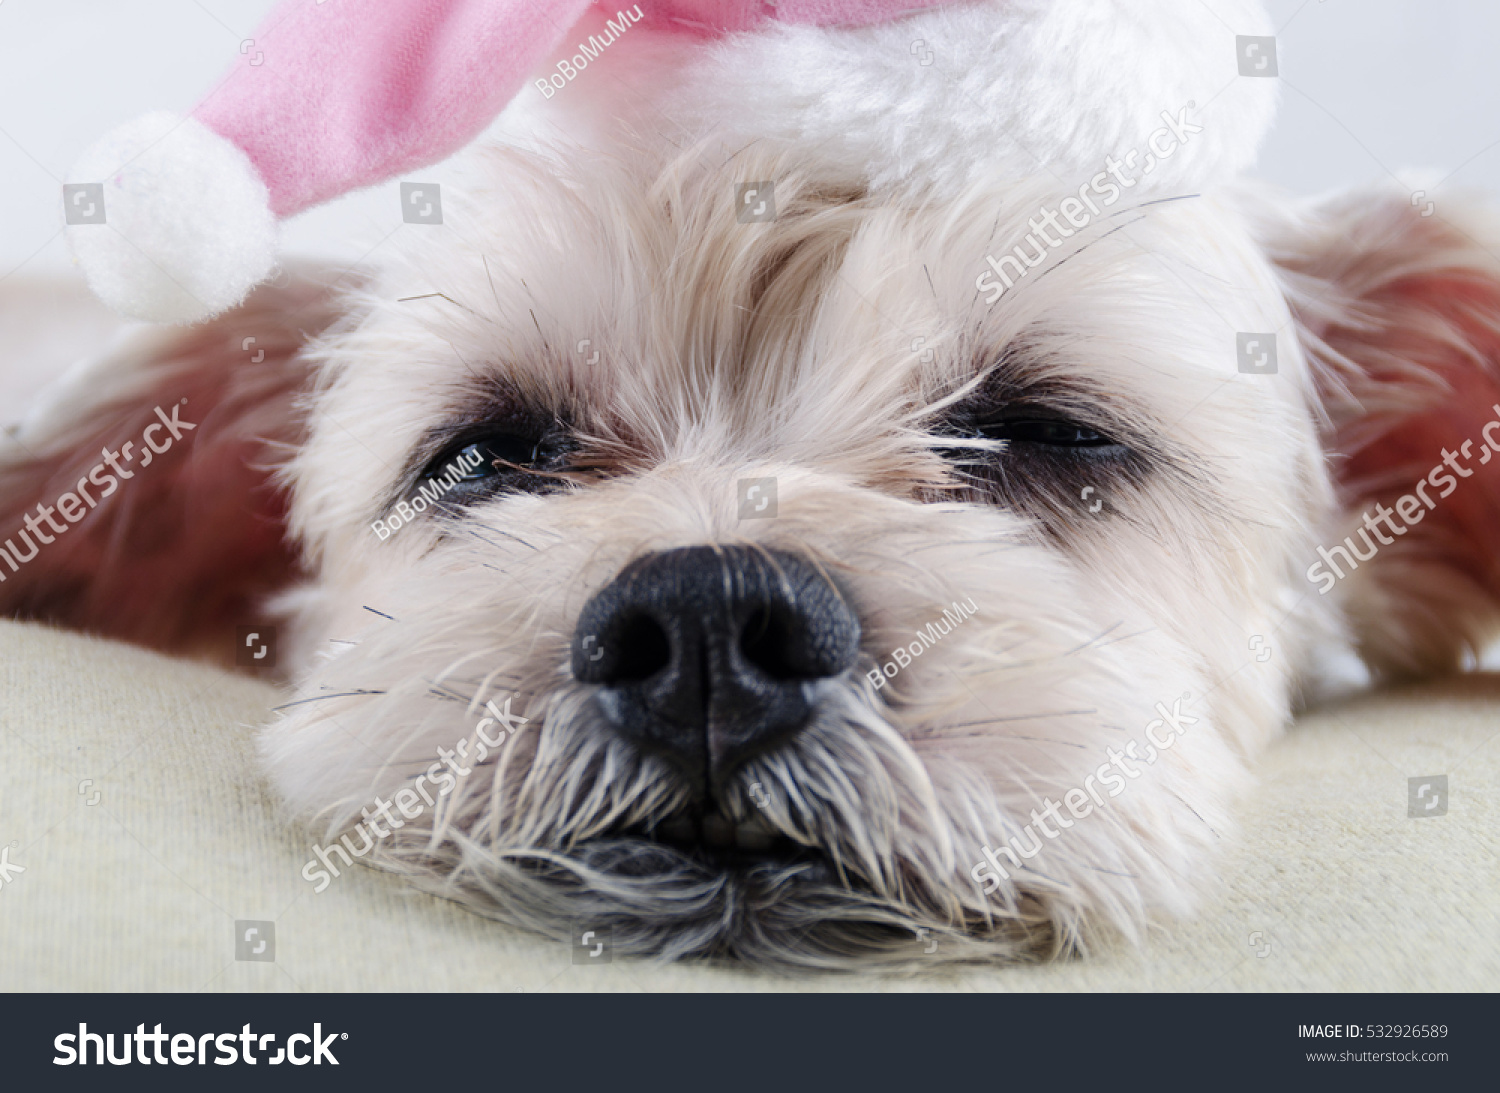 Cute Short Hair Mixed Breed Puppy Shih Tzu Schnauzer With Hat